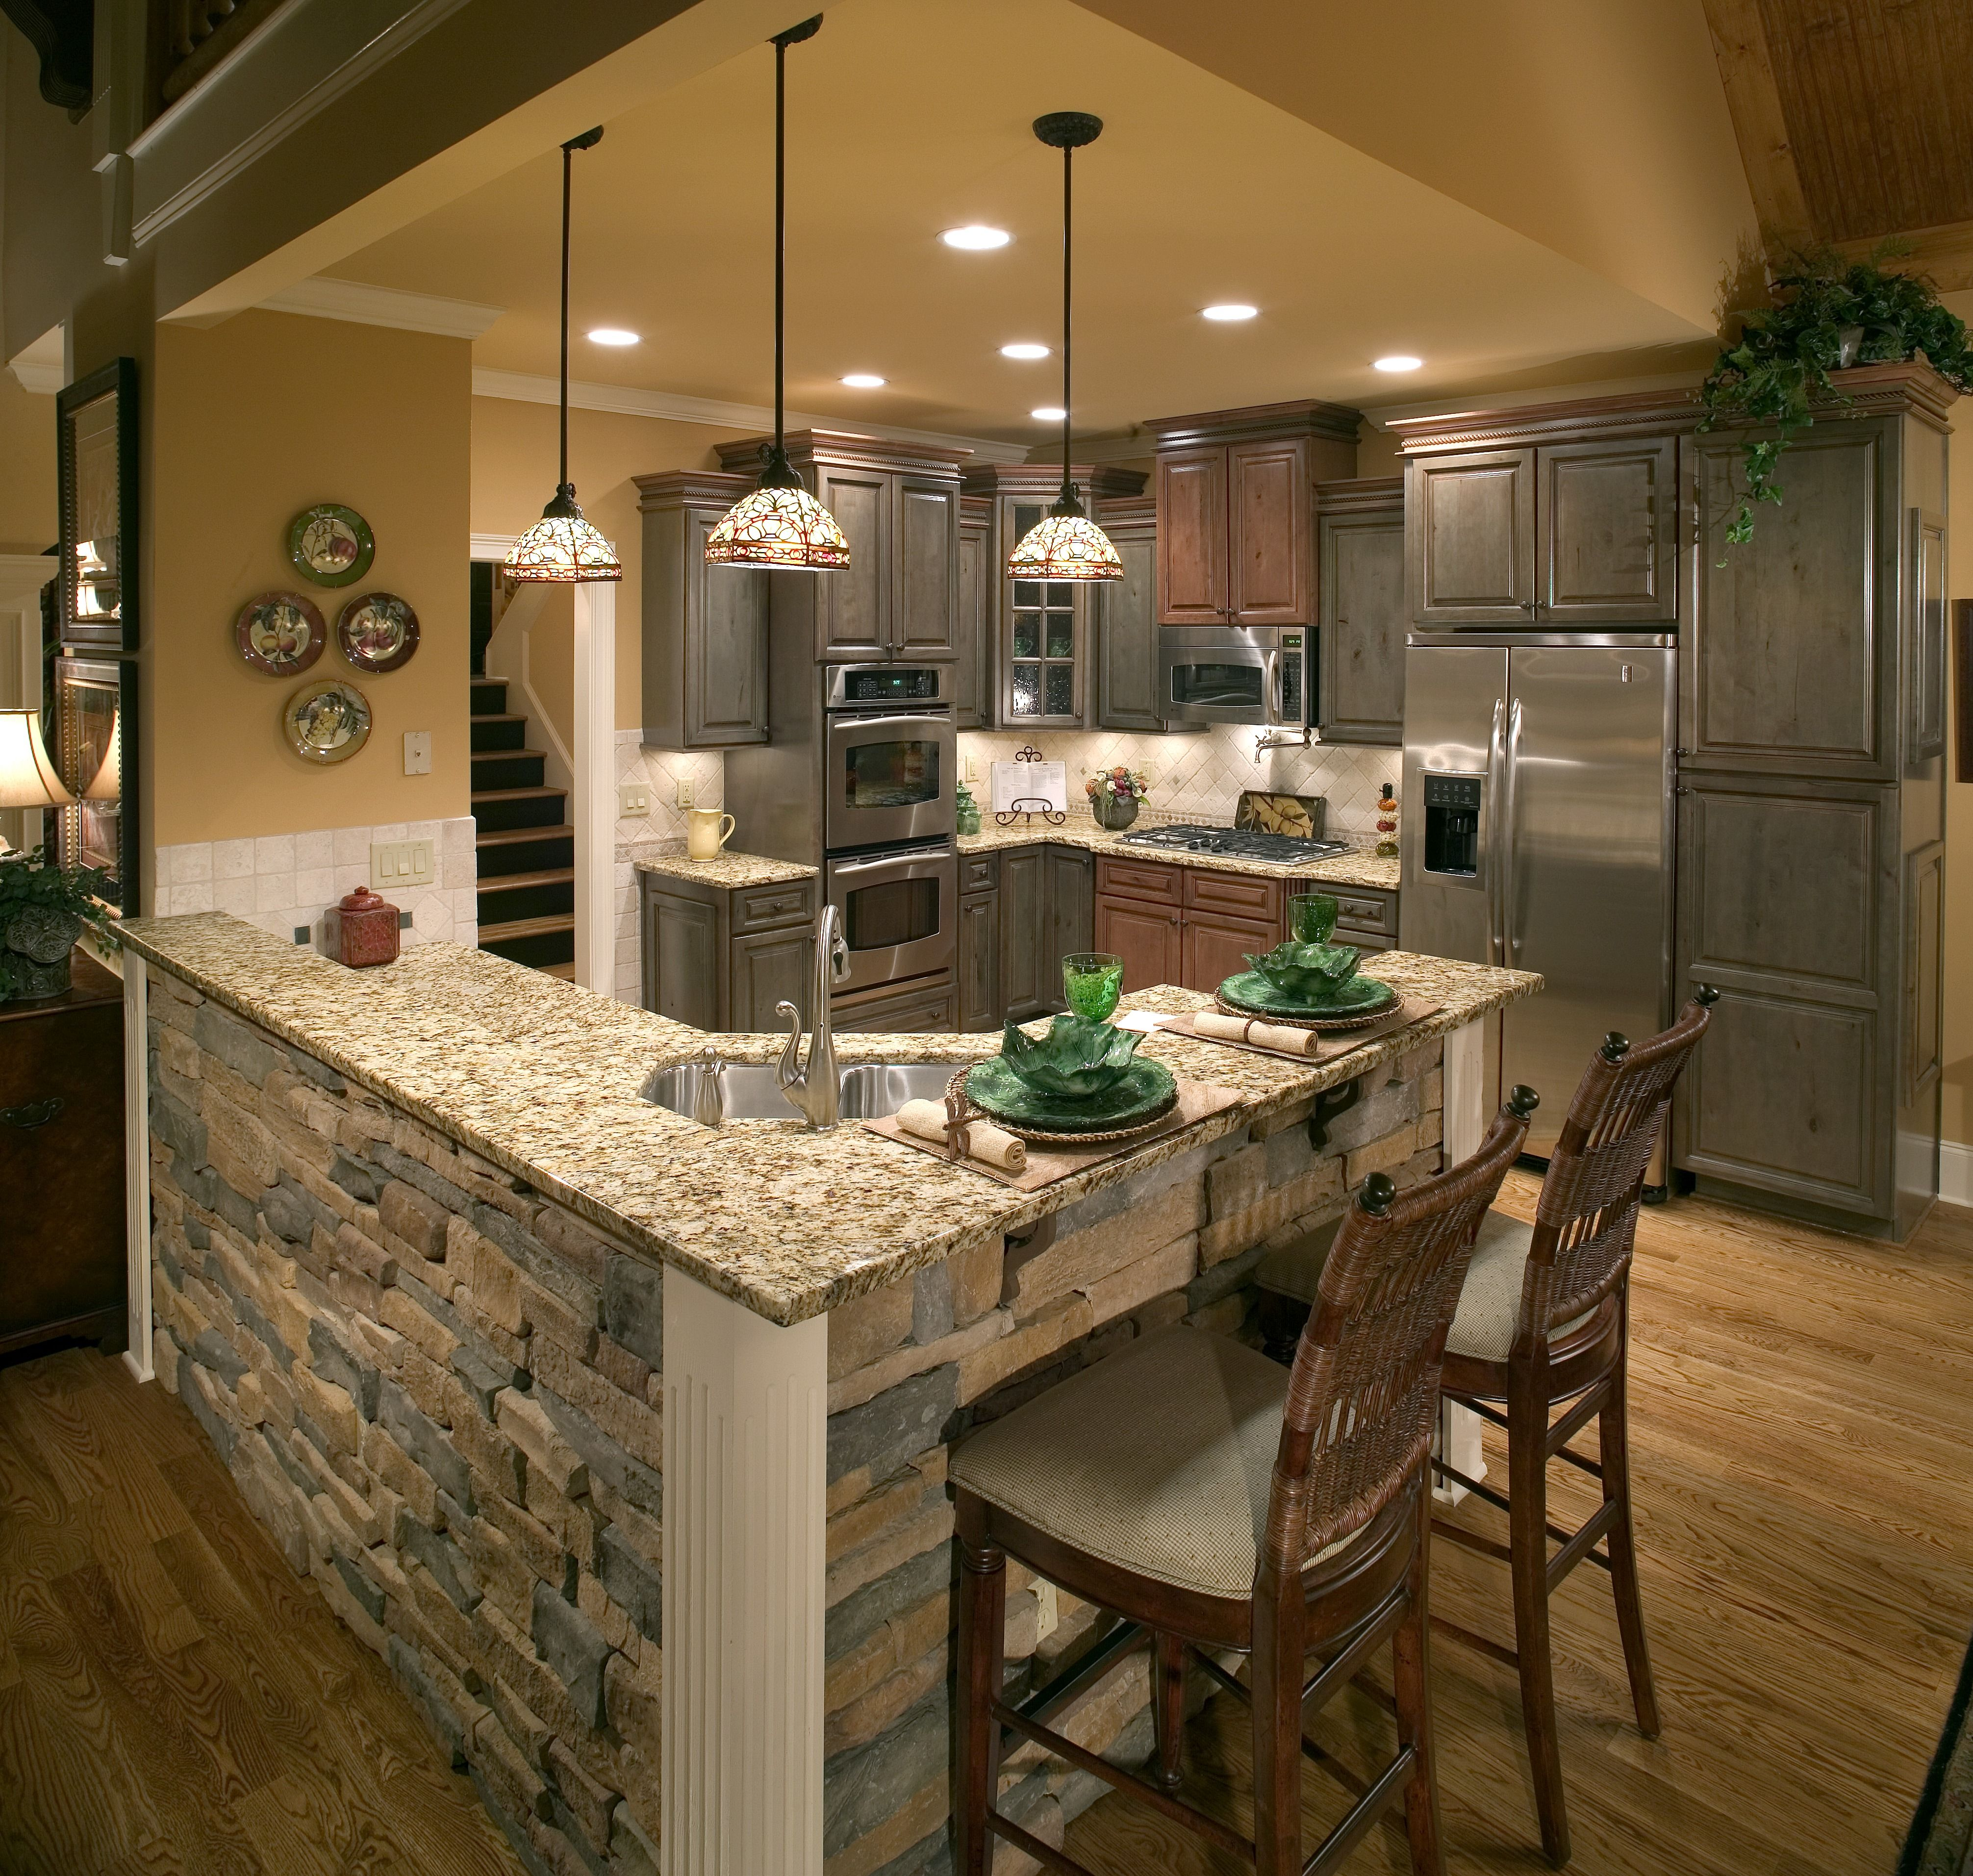 This Cozy Kitchen Features A Stone Brick Kitchen Island